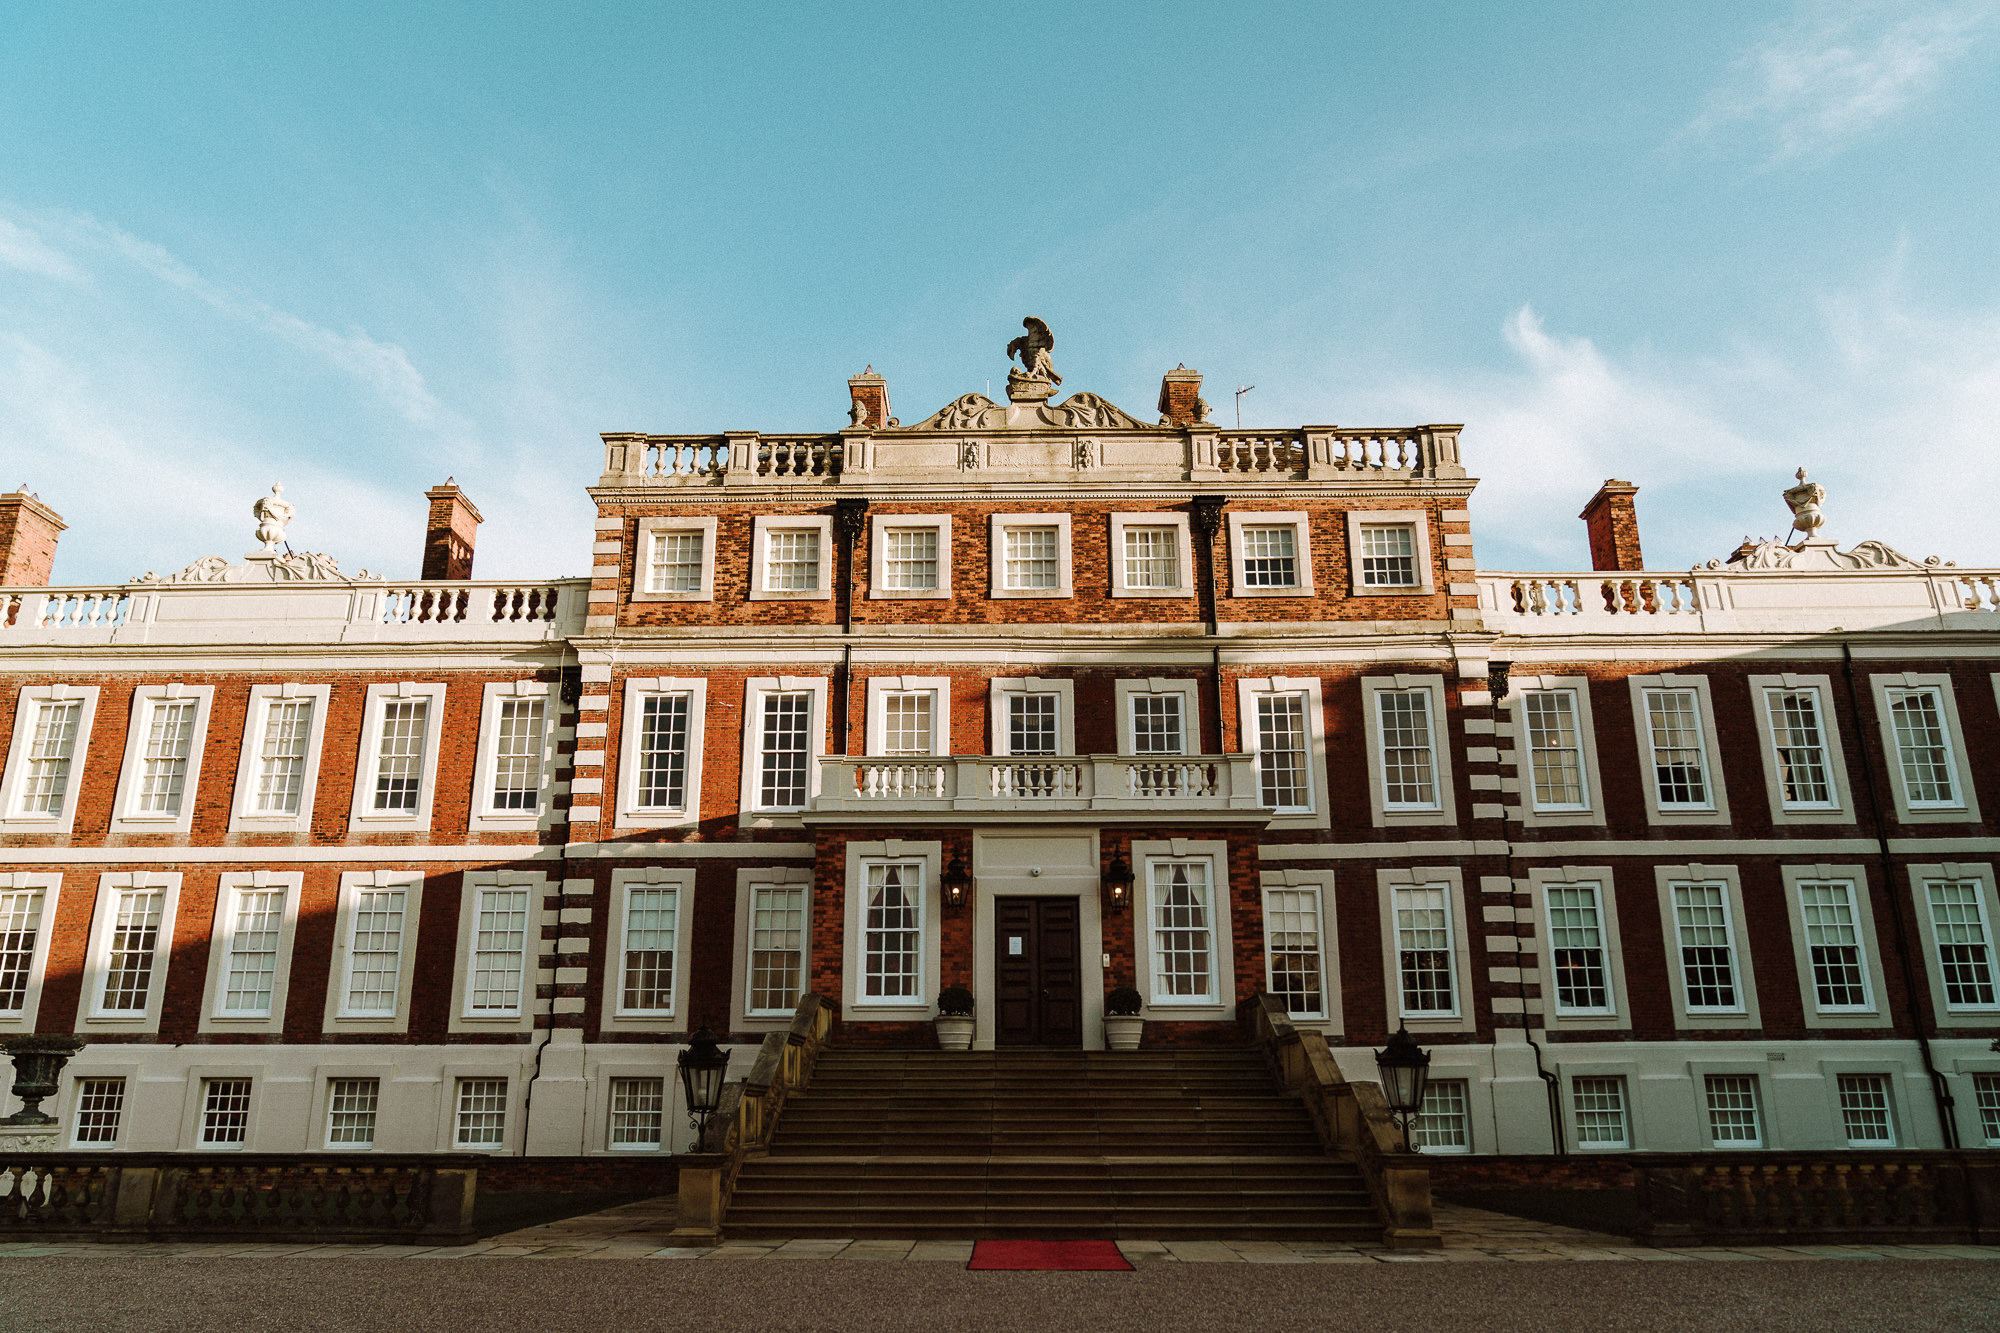 Exterior of Knowsley Hall